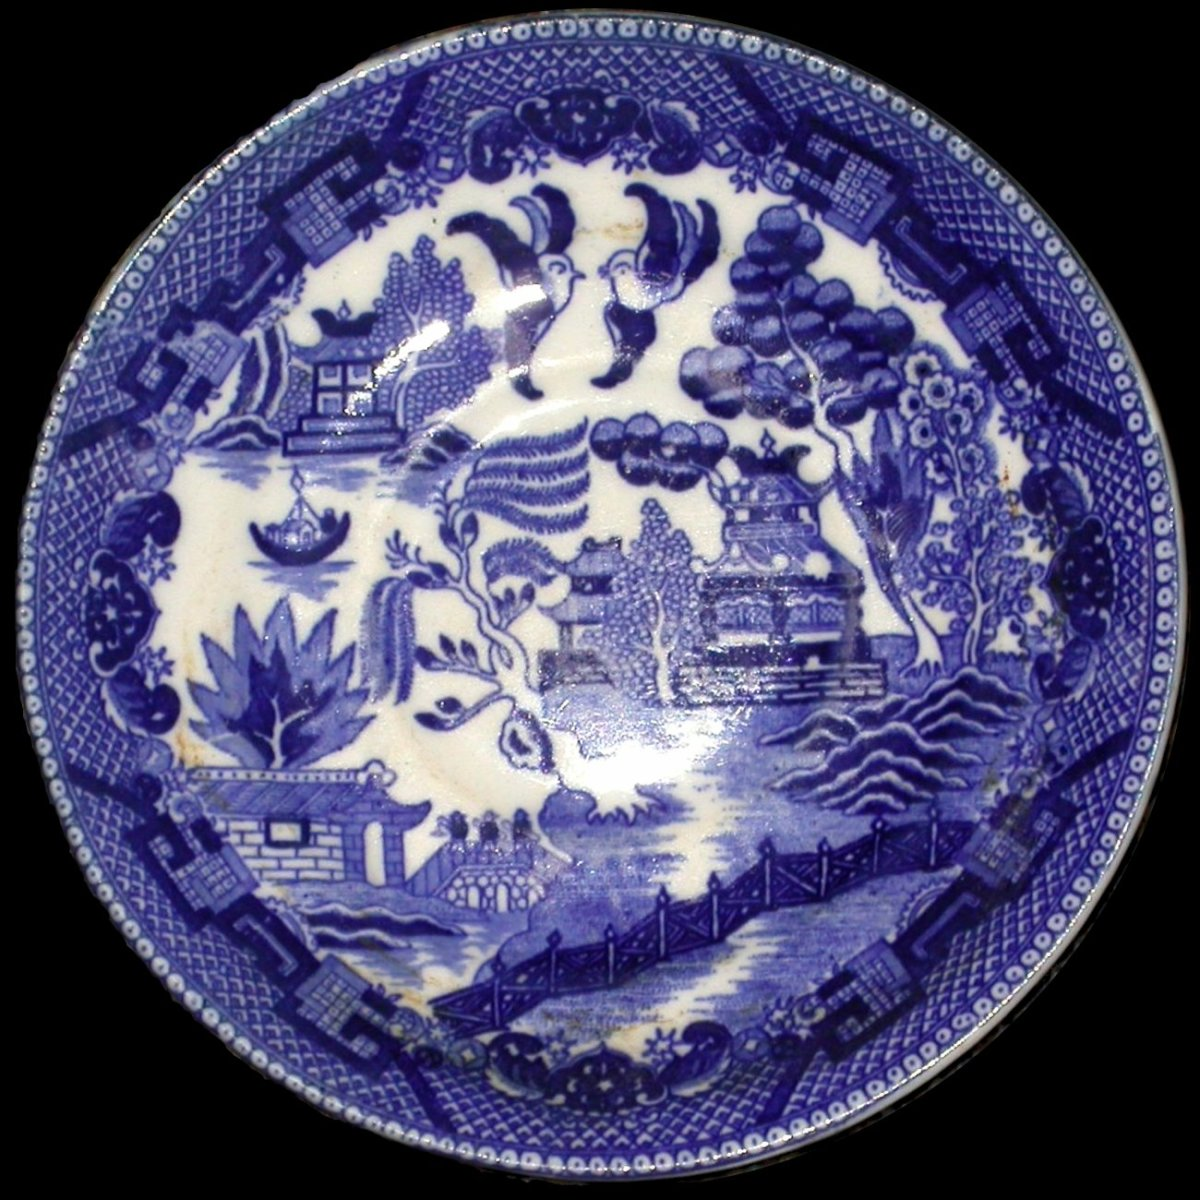 The Blue Willow China Pattern